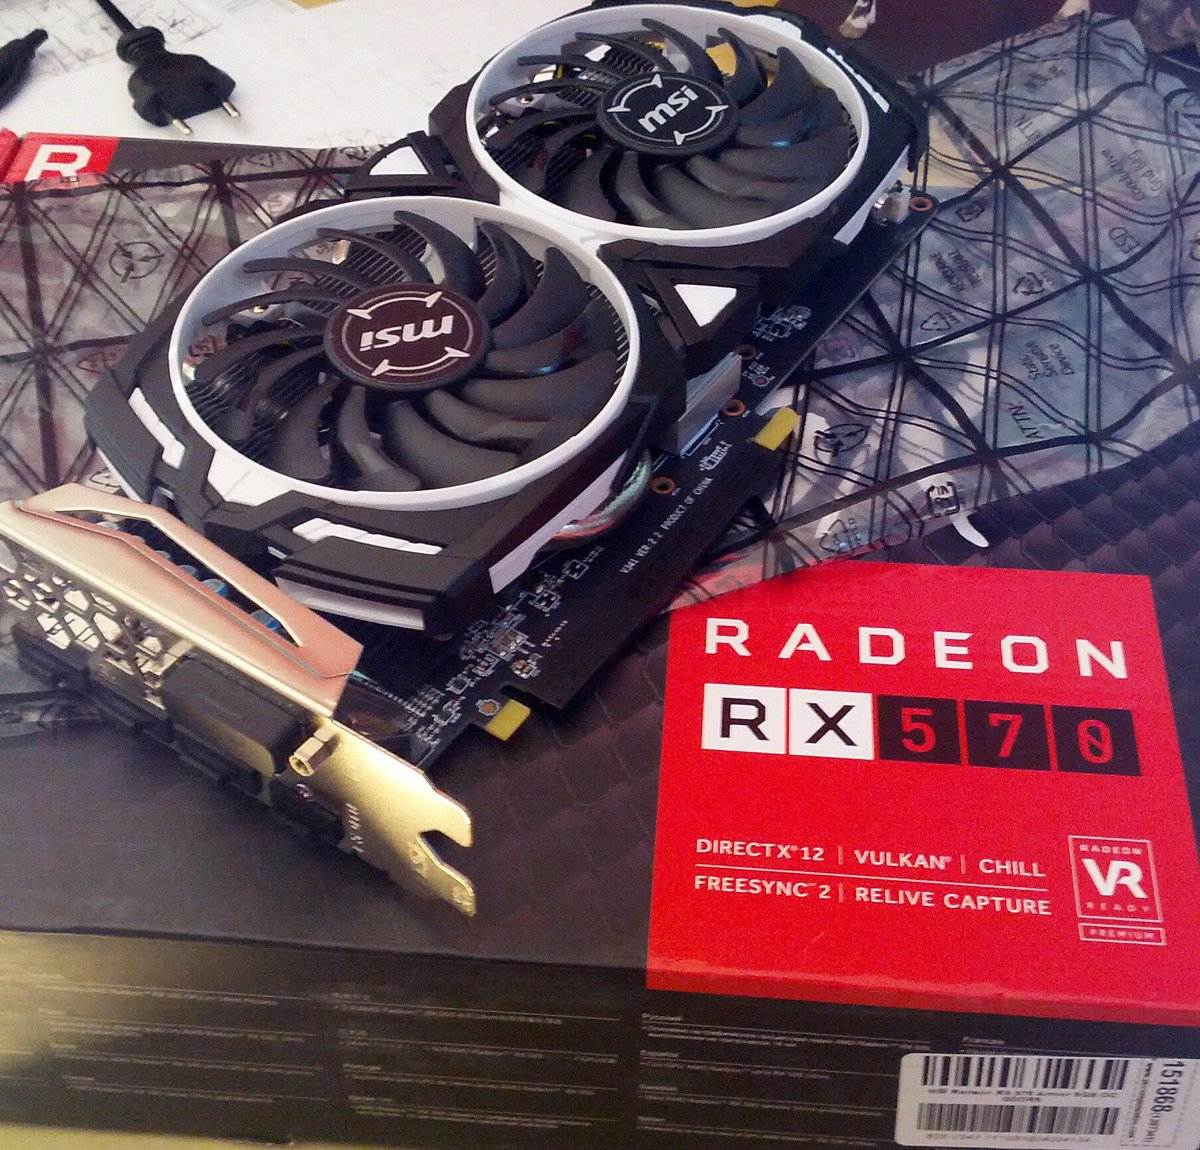 How To Install Rx 570 Drivers